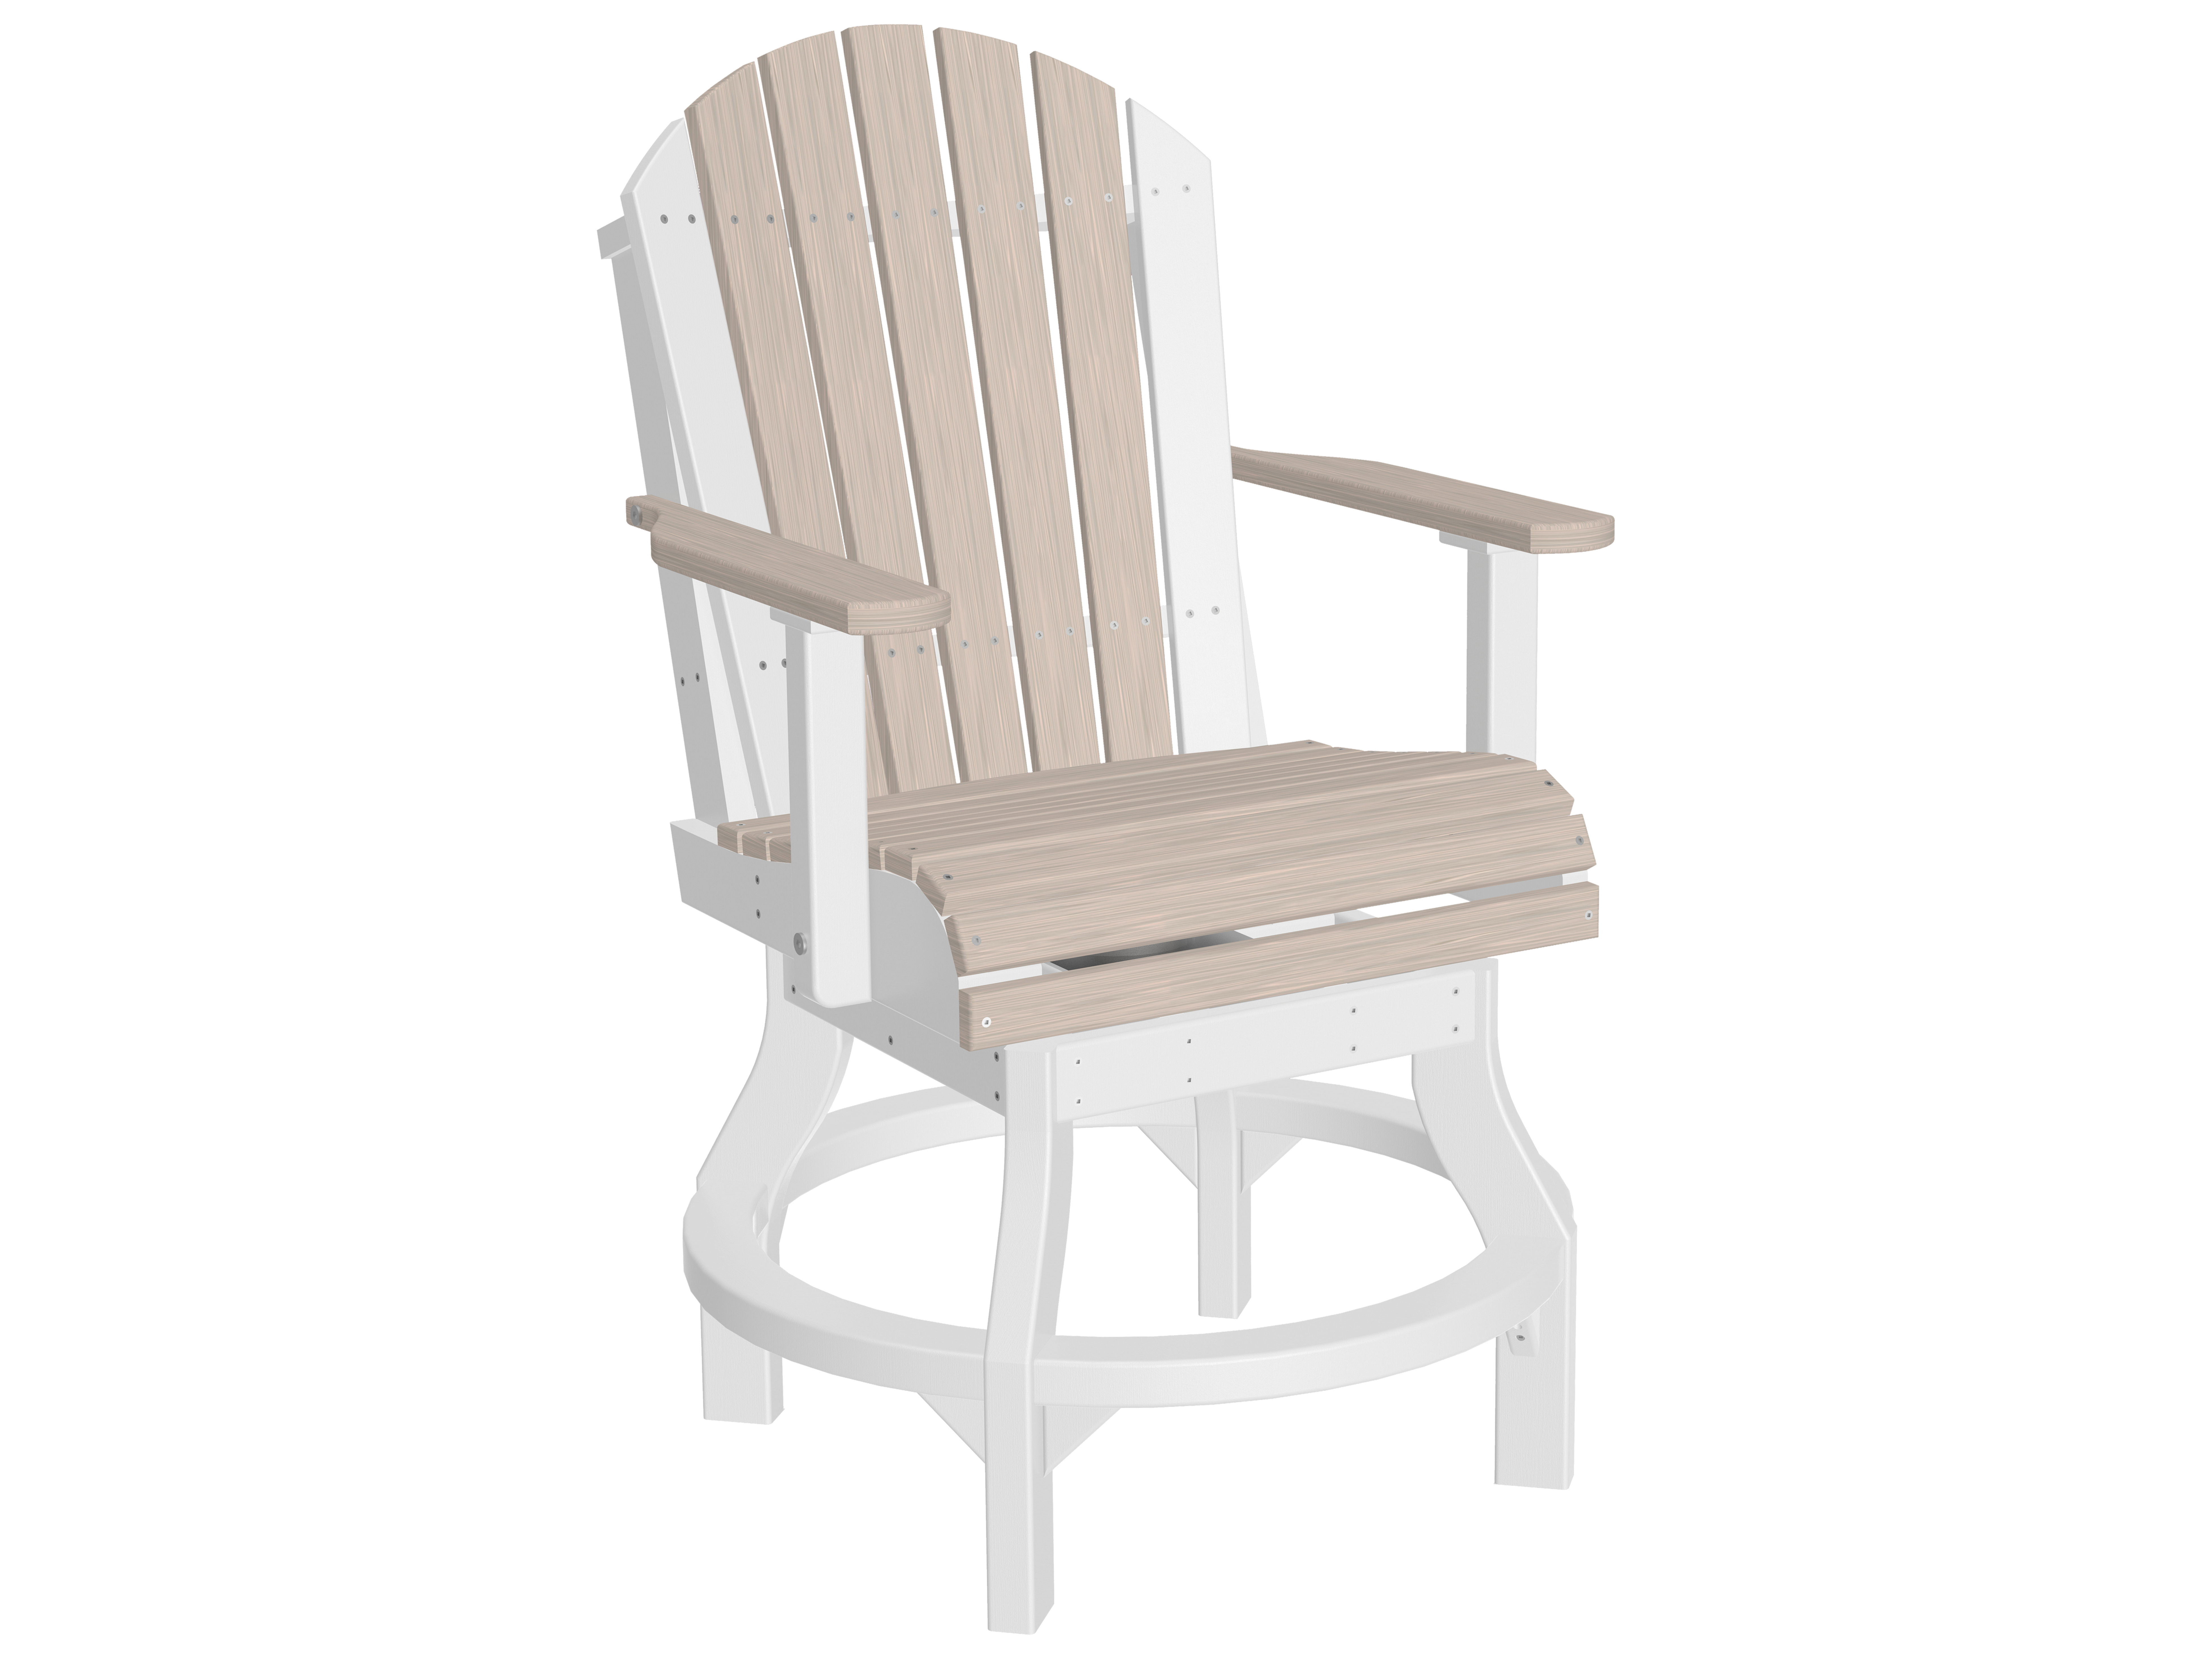 counter height chair slipcovers rent covers for cheap luxcraft recycled plastic adirondack swivel